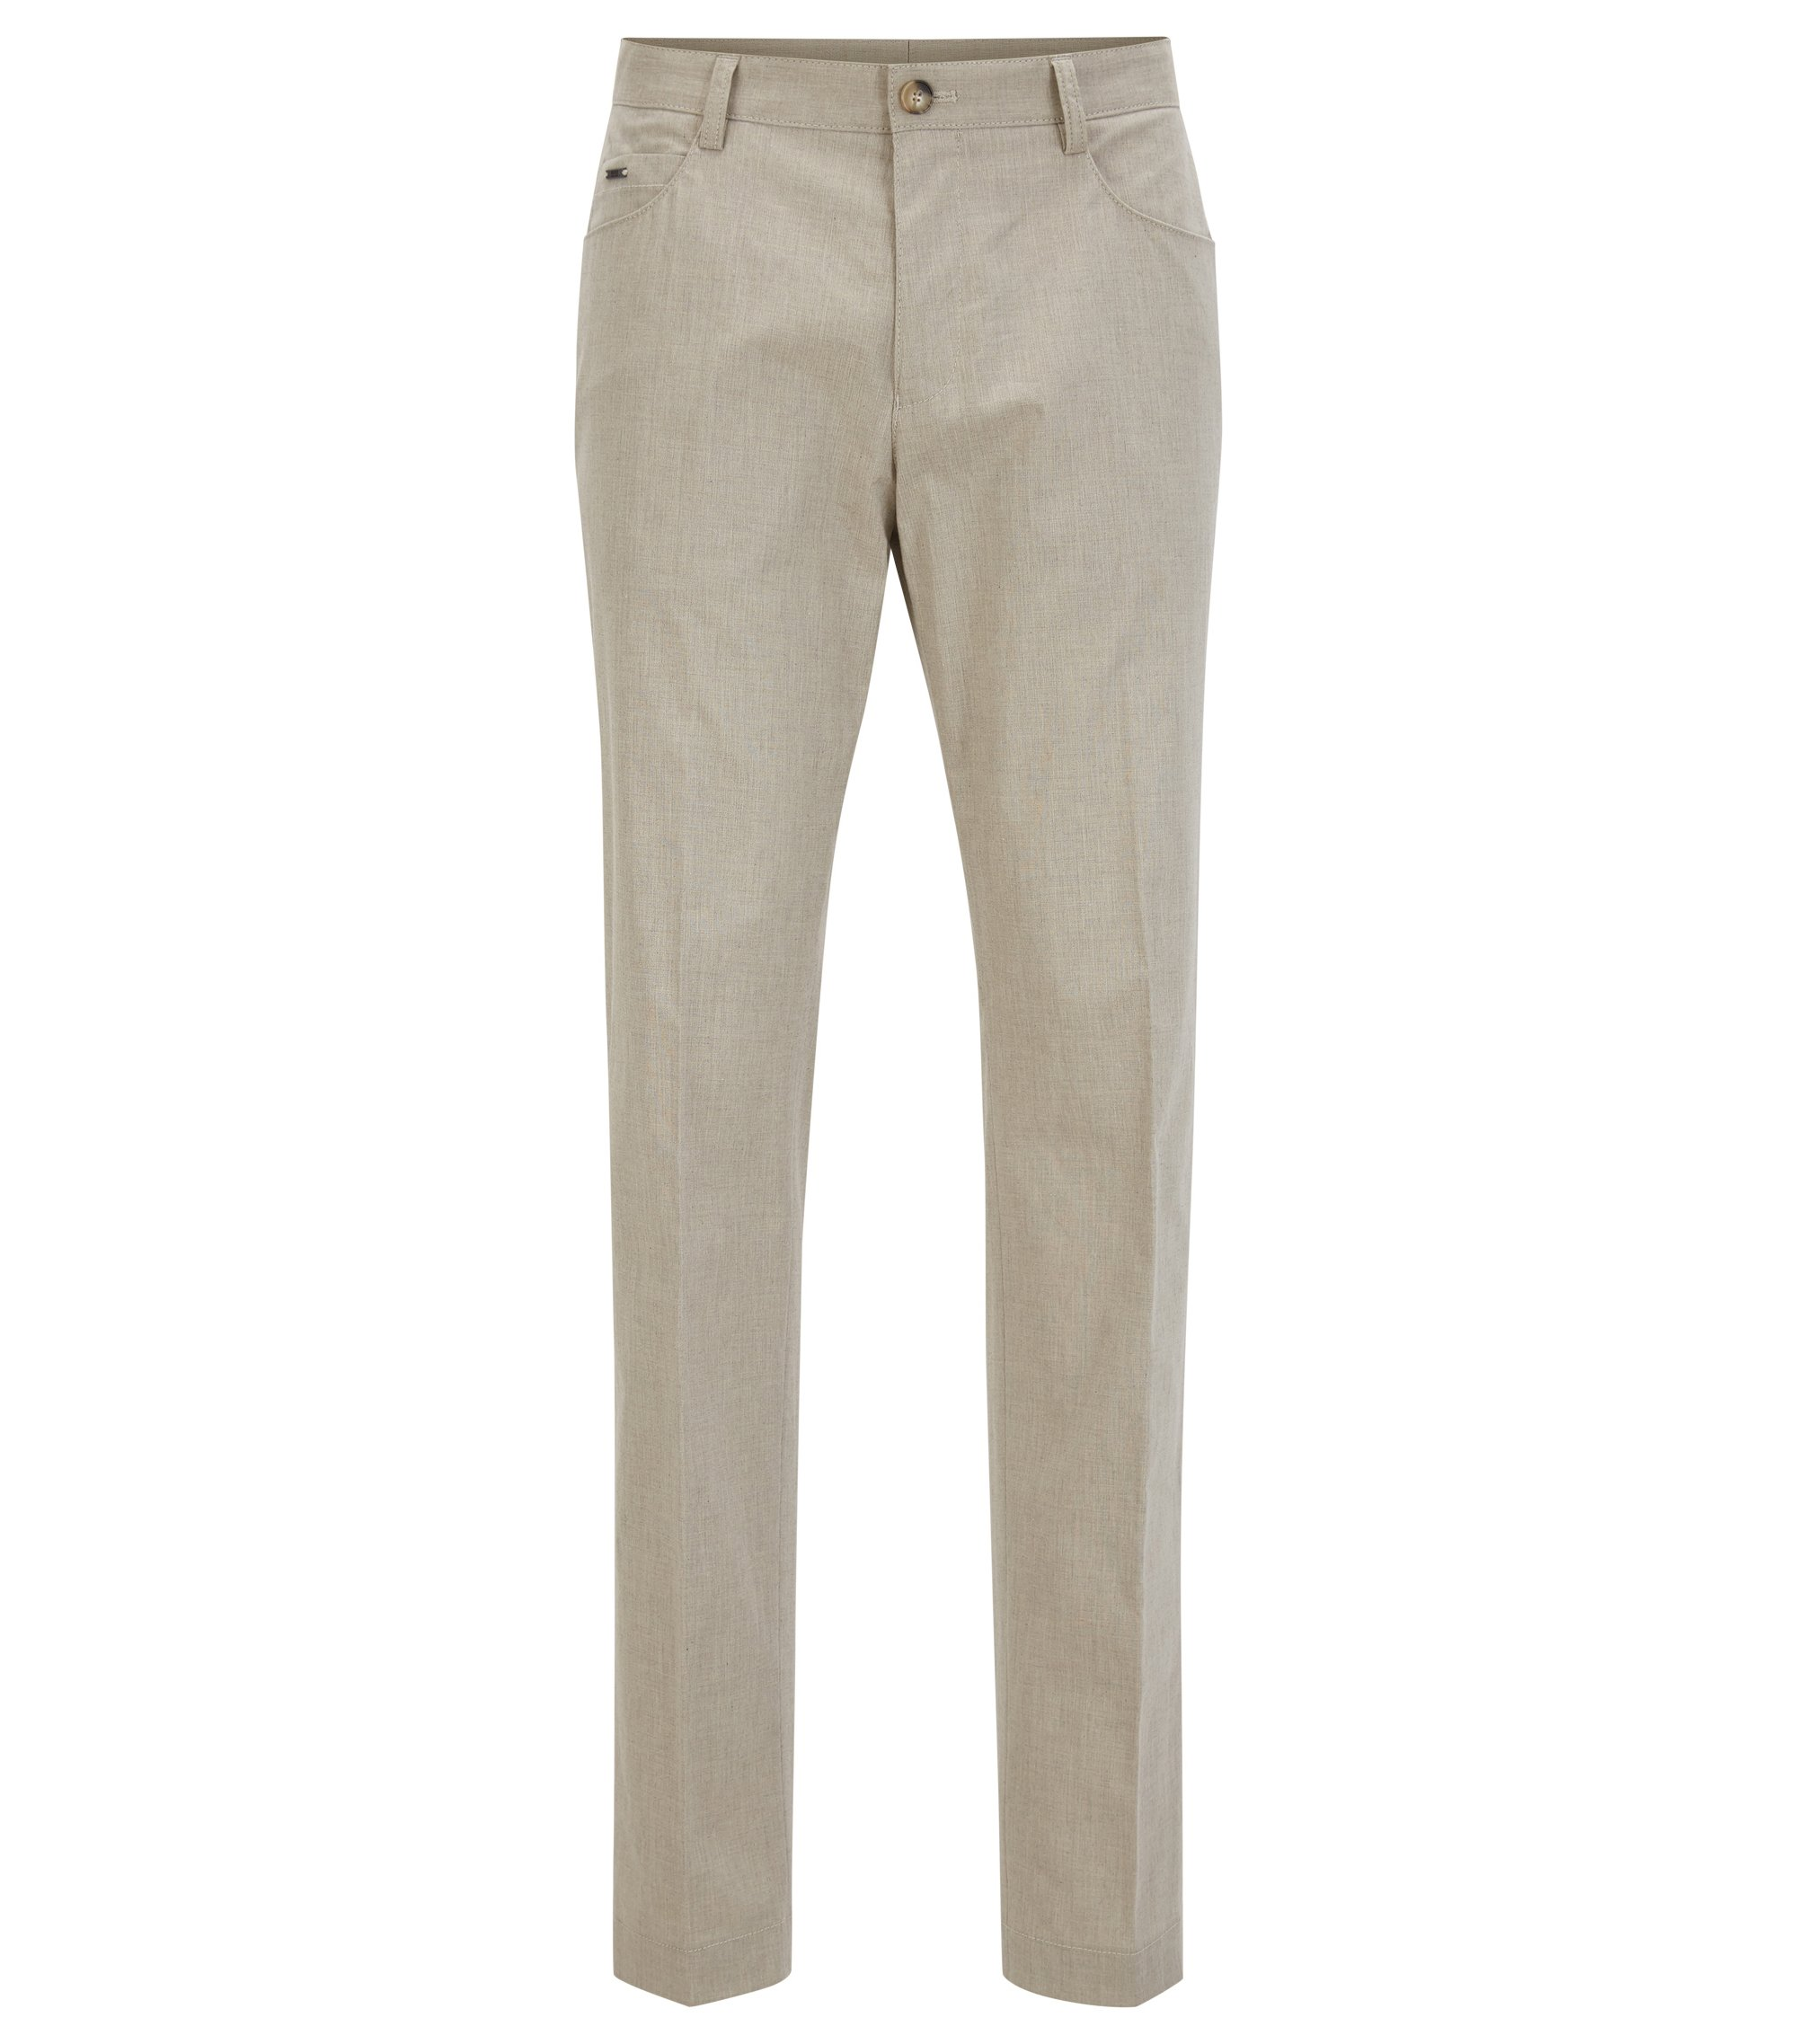 Heathered Stretch Cotton Dress Pant, Slim Fit | Gaetano, Beige